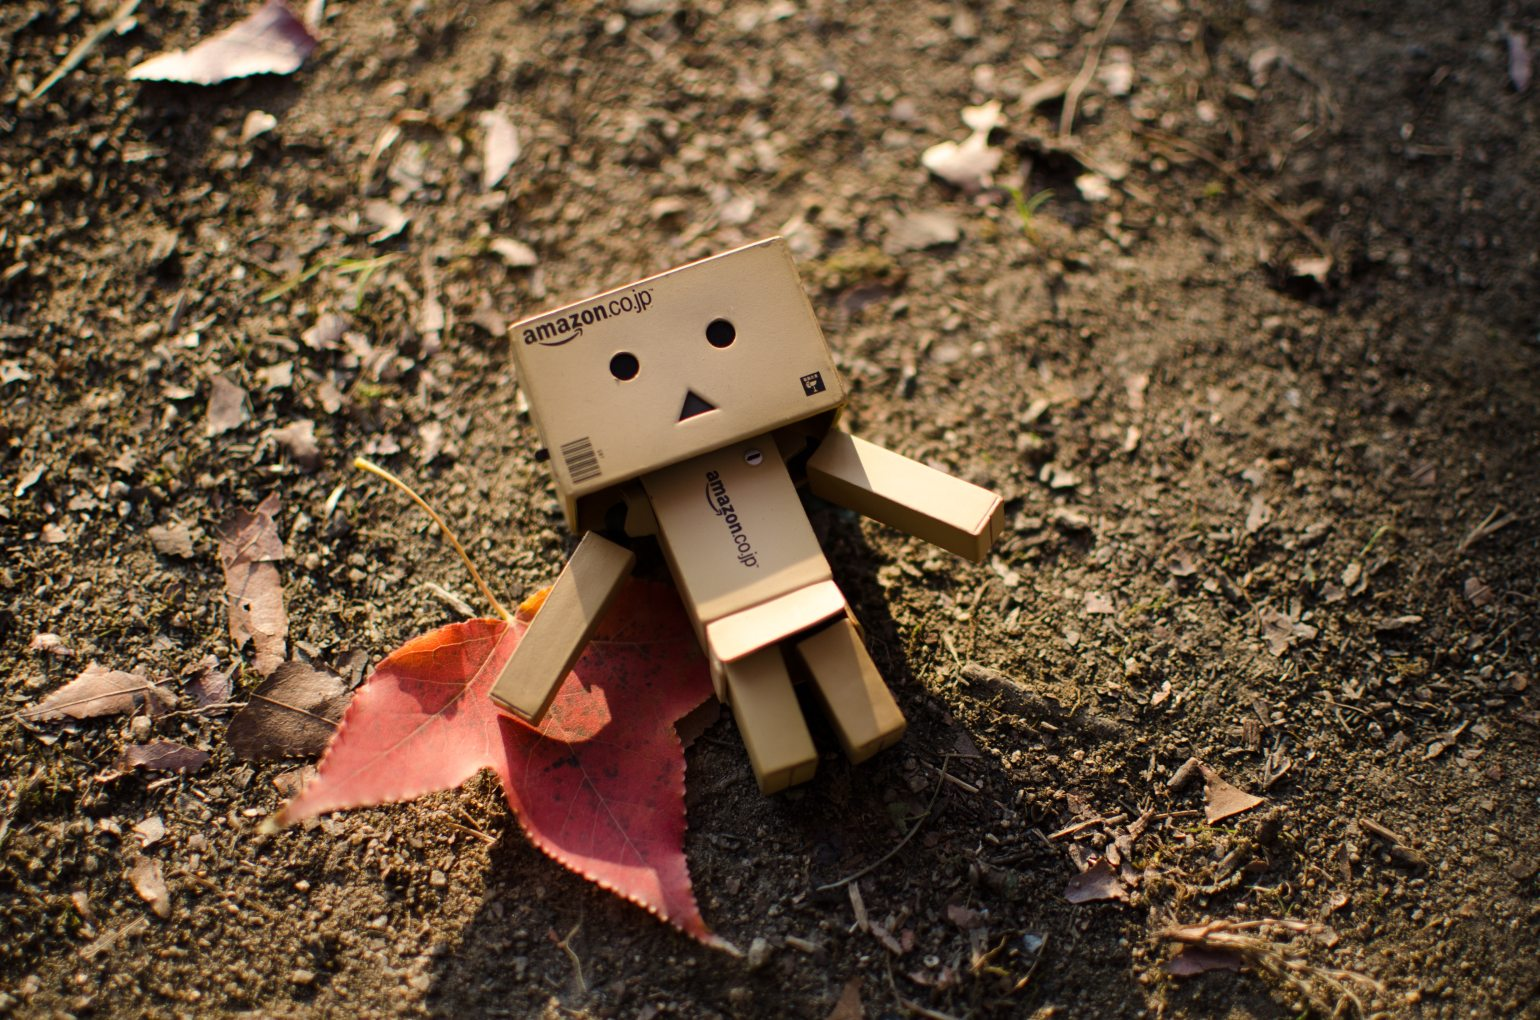 autumn-leaf-cardboard-cute-176842